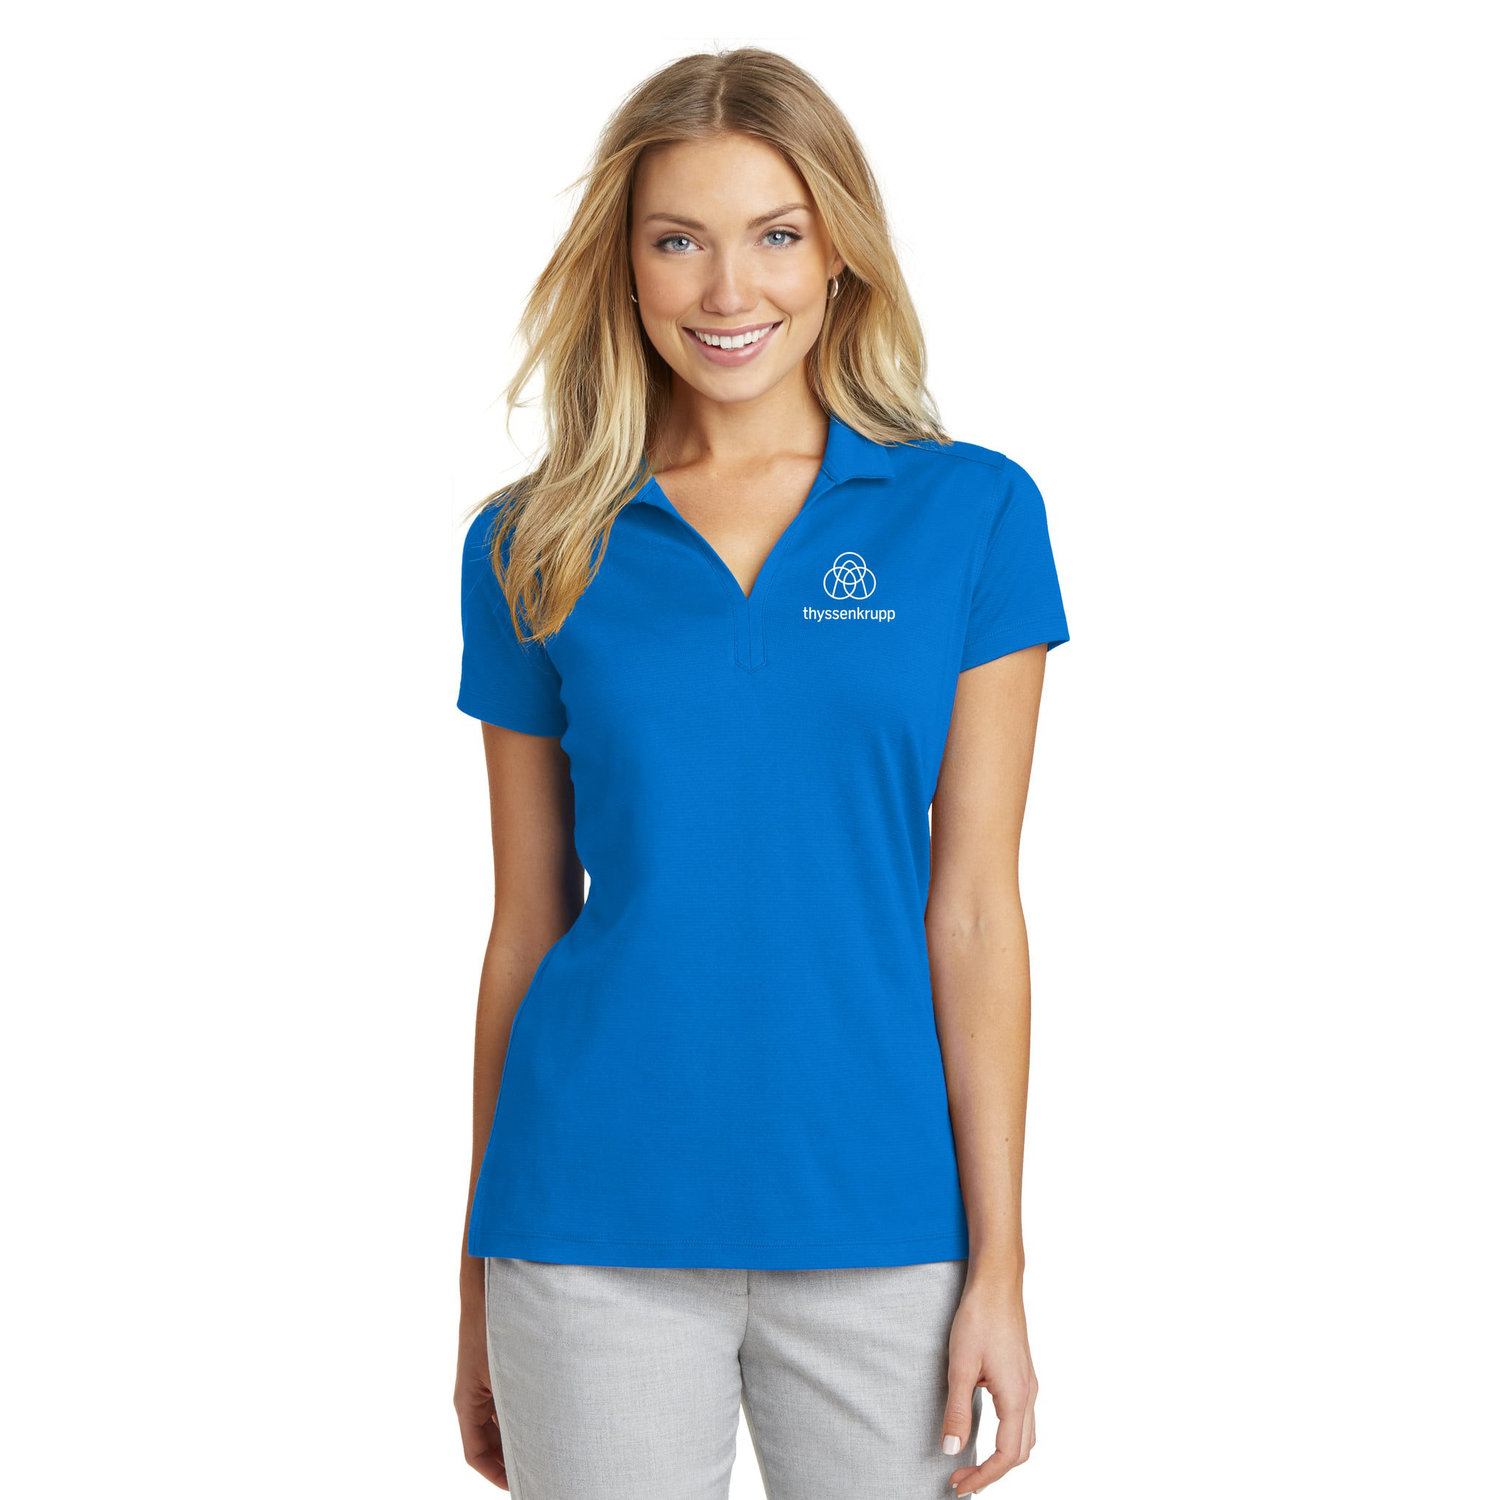 c3bd3a3d310 Polo Shirts. Polo Shirts Port Authority® Ladies Rapid Dry™ Mesh ...